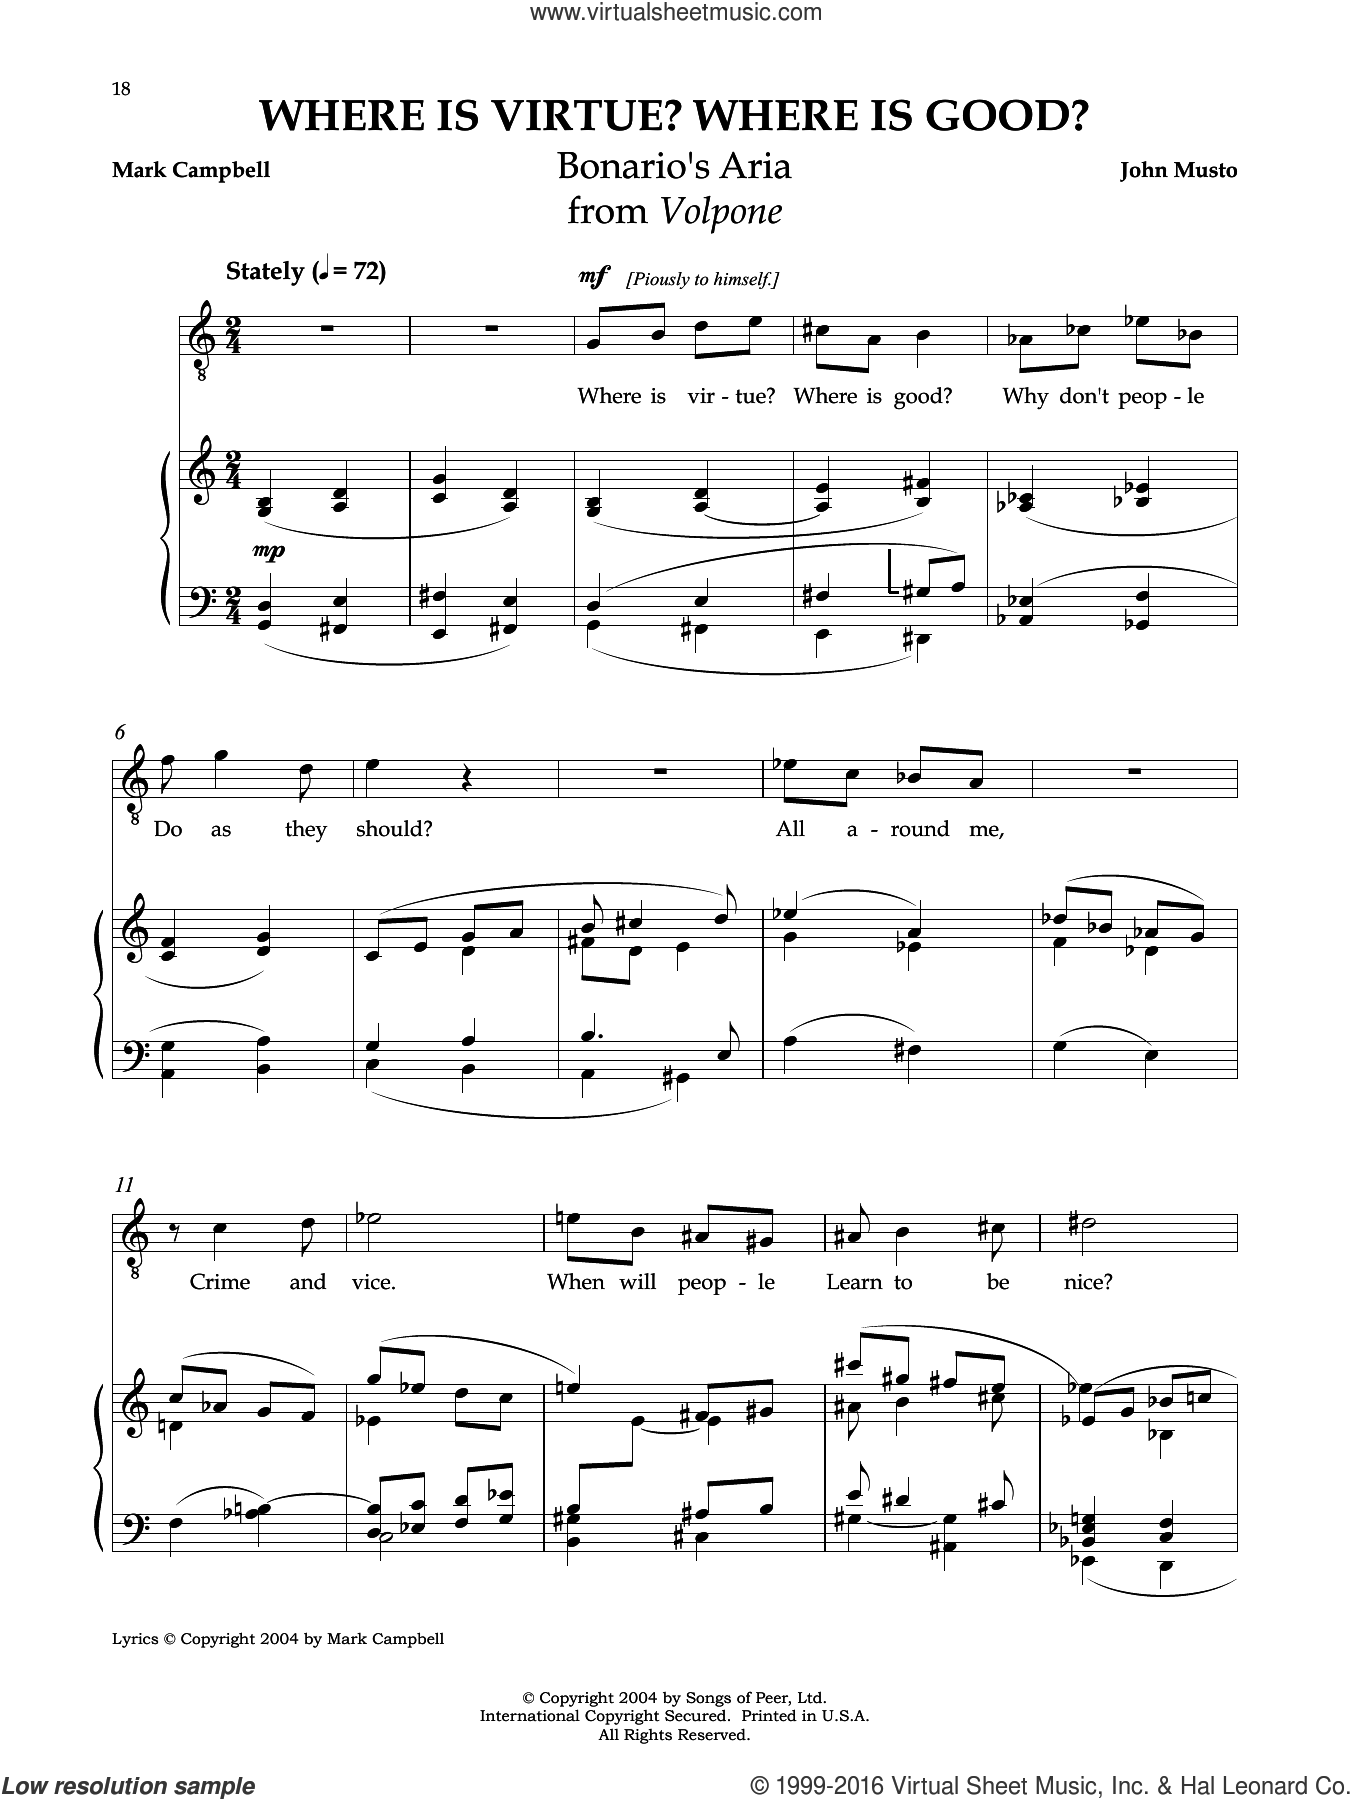 Where Is Virtue? Where Is Good? sheet music for voice and piano by Mark Campbell and John Musto. Score Image Preview.